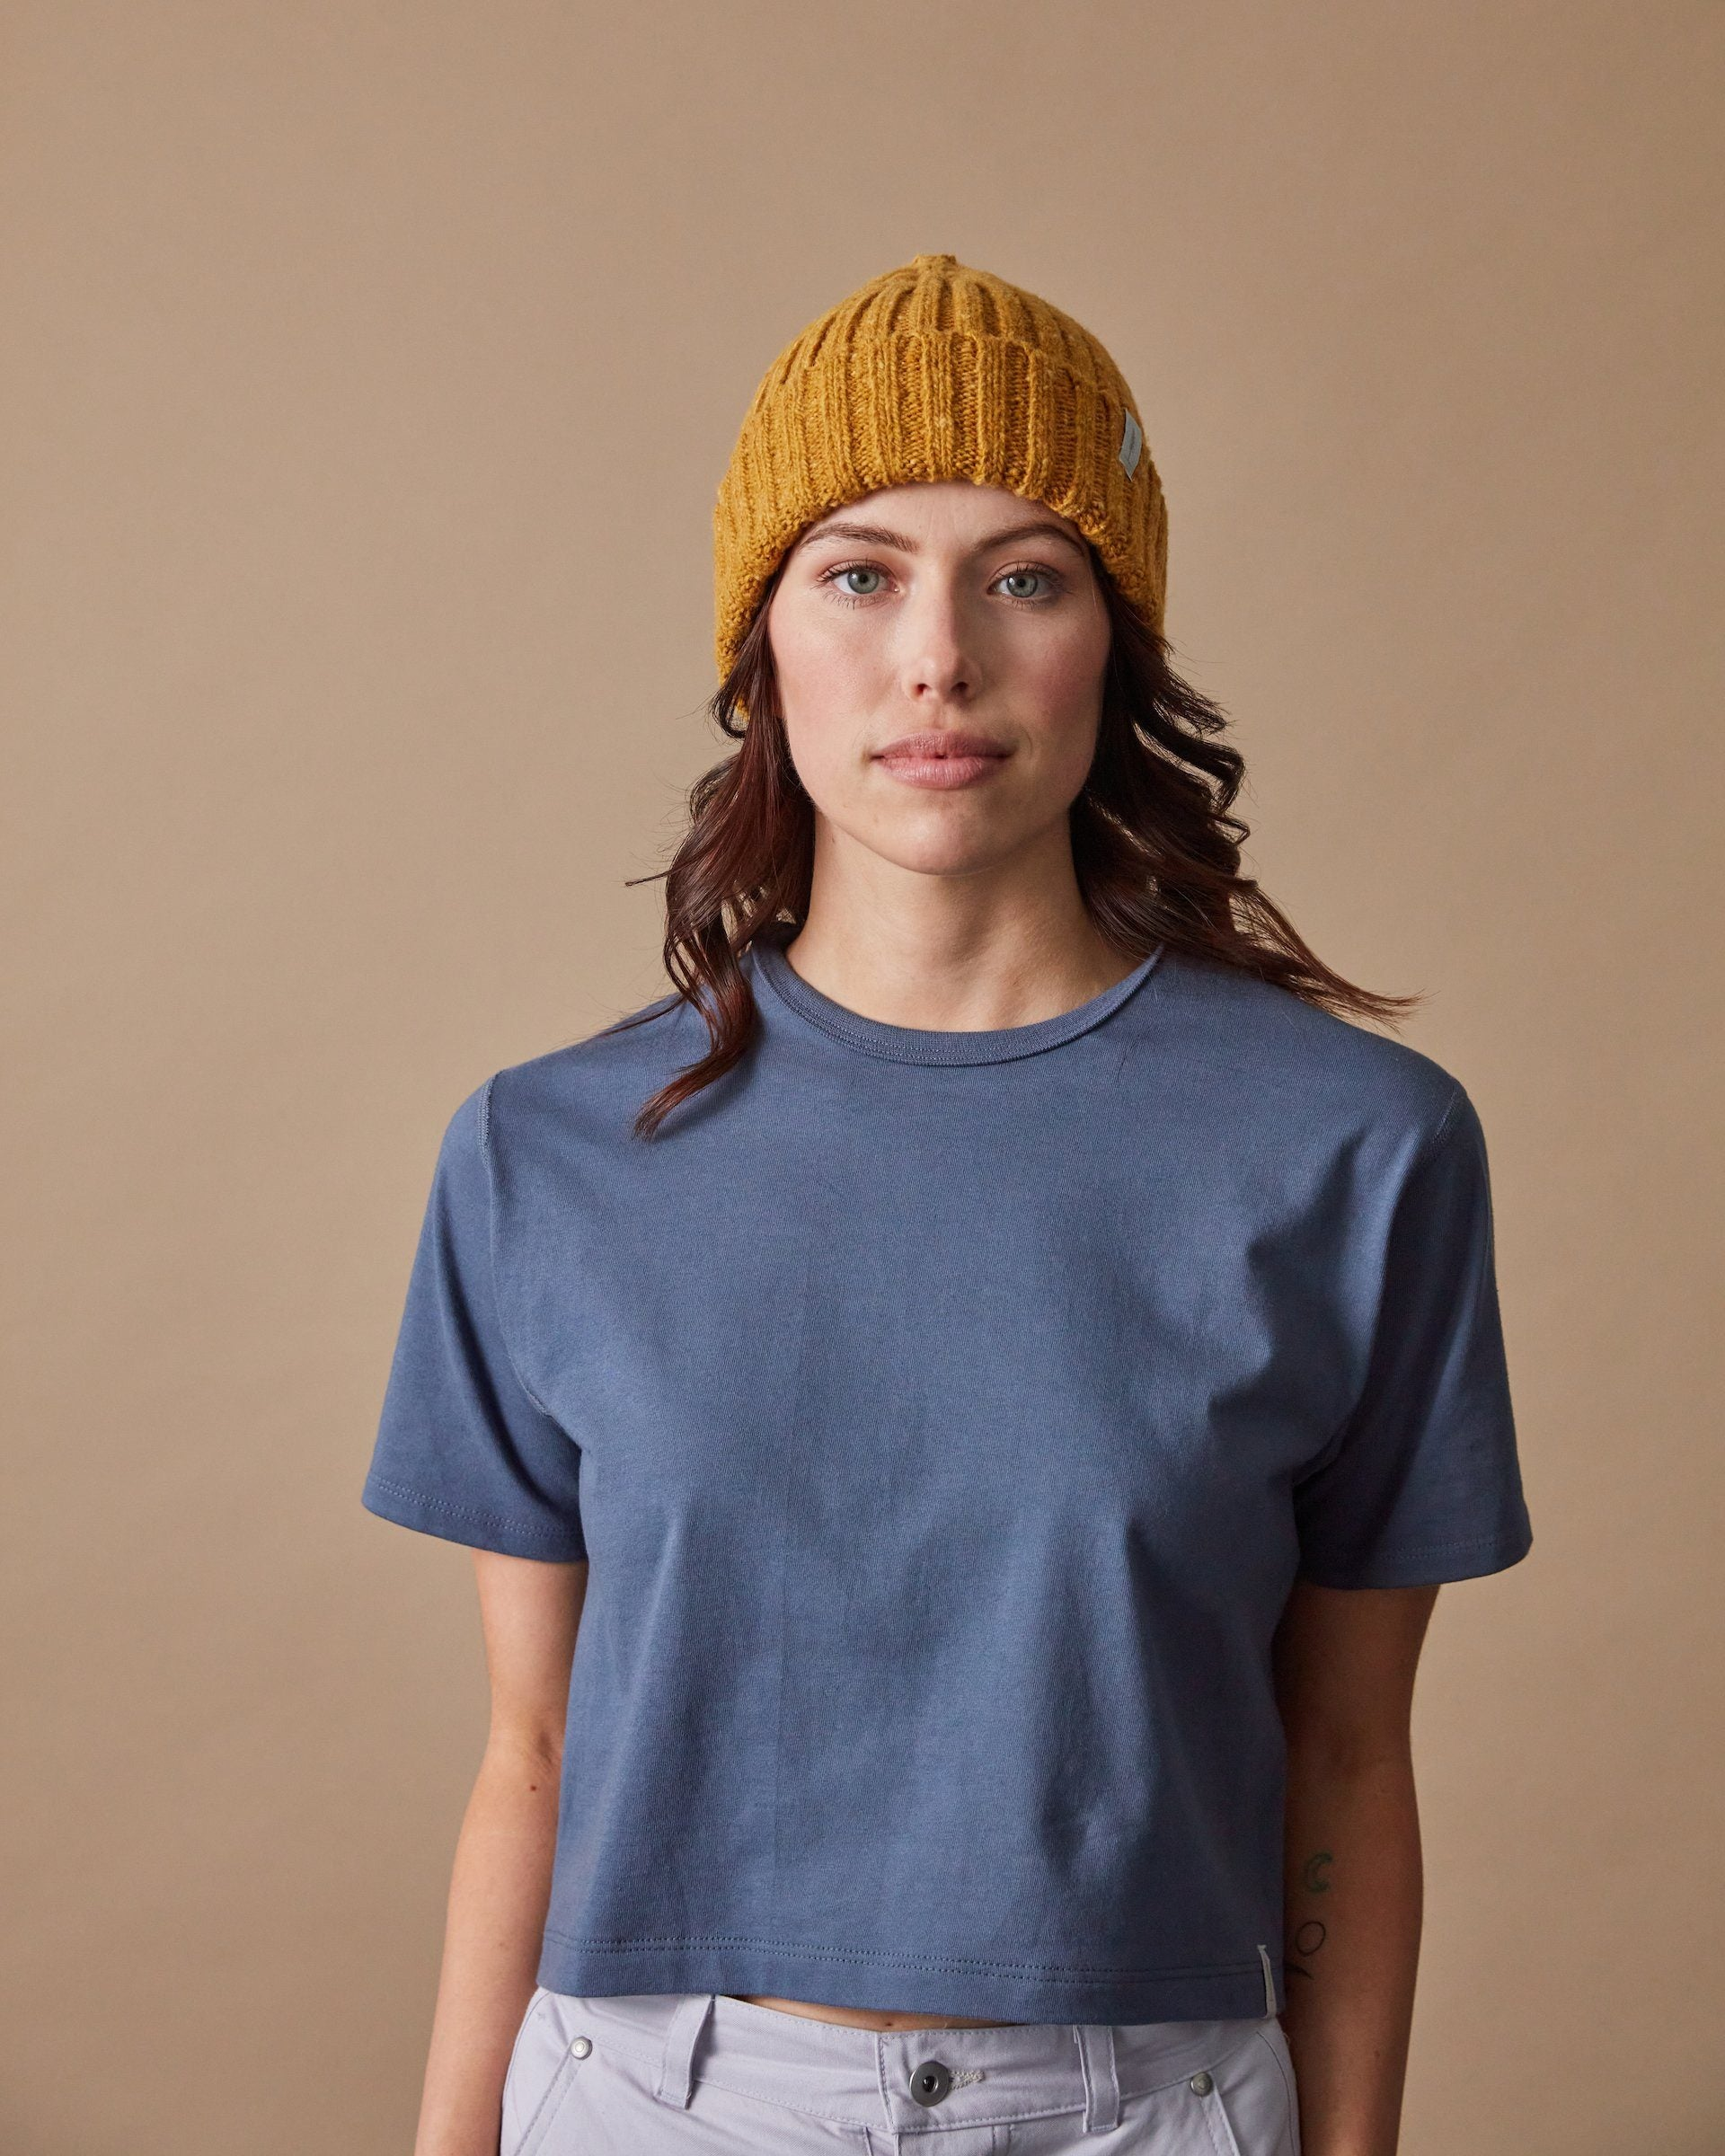 The Fisherman Toque in Speckled Yellow - Front#colour_speckled-yellow